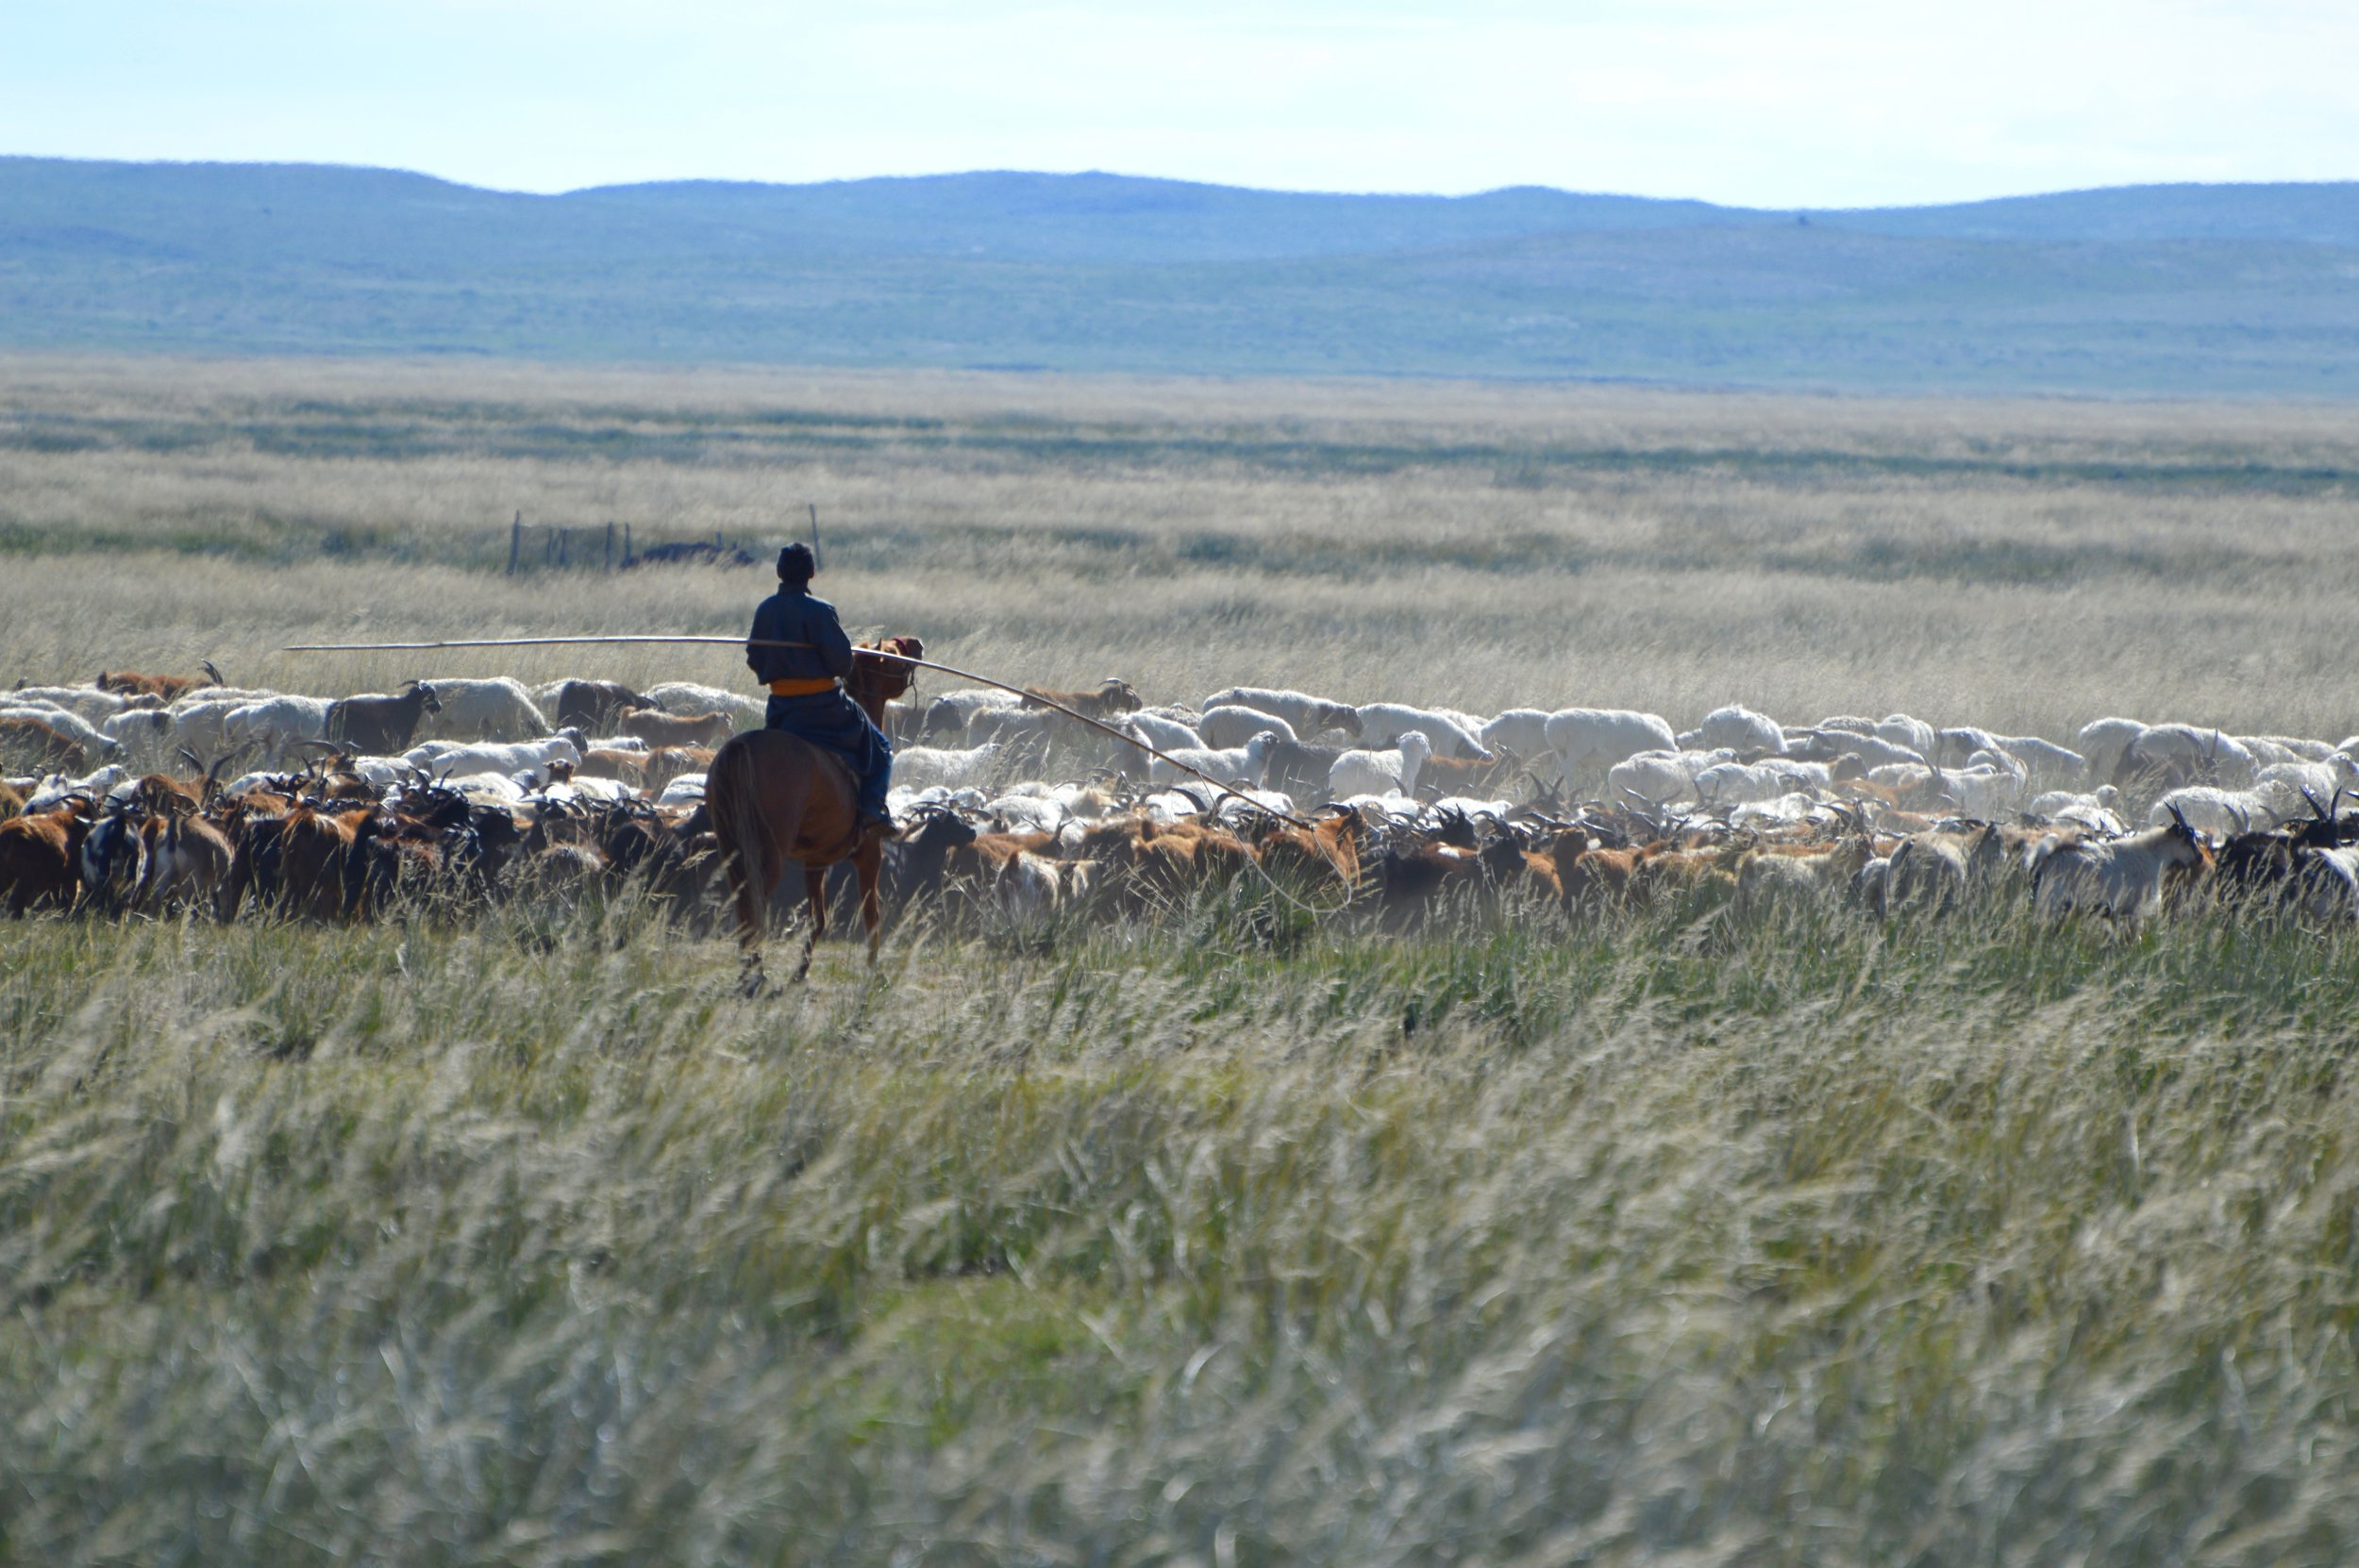 A Mongolian herdsman moves his goats and sheep